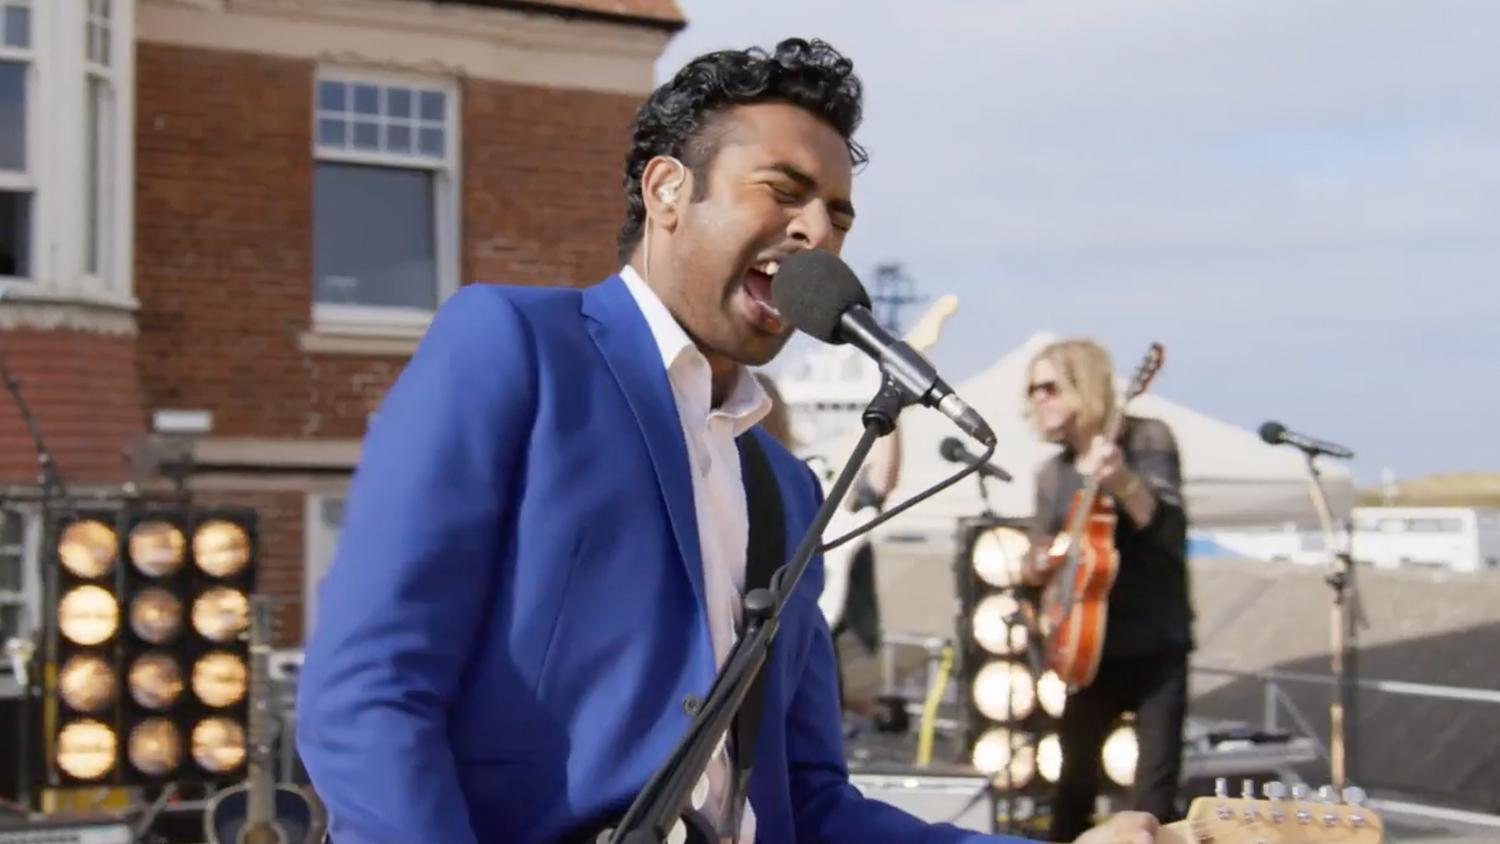 Yesterday Trailer Unveils Richard Curtis And Danny Boyle's Beatles Comedy | Movies | News